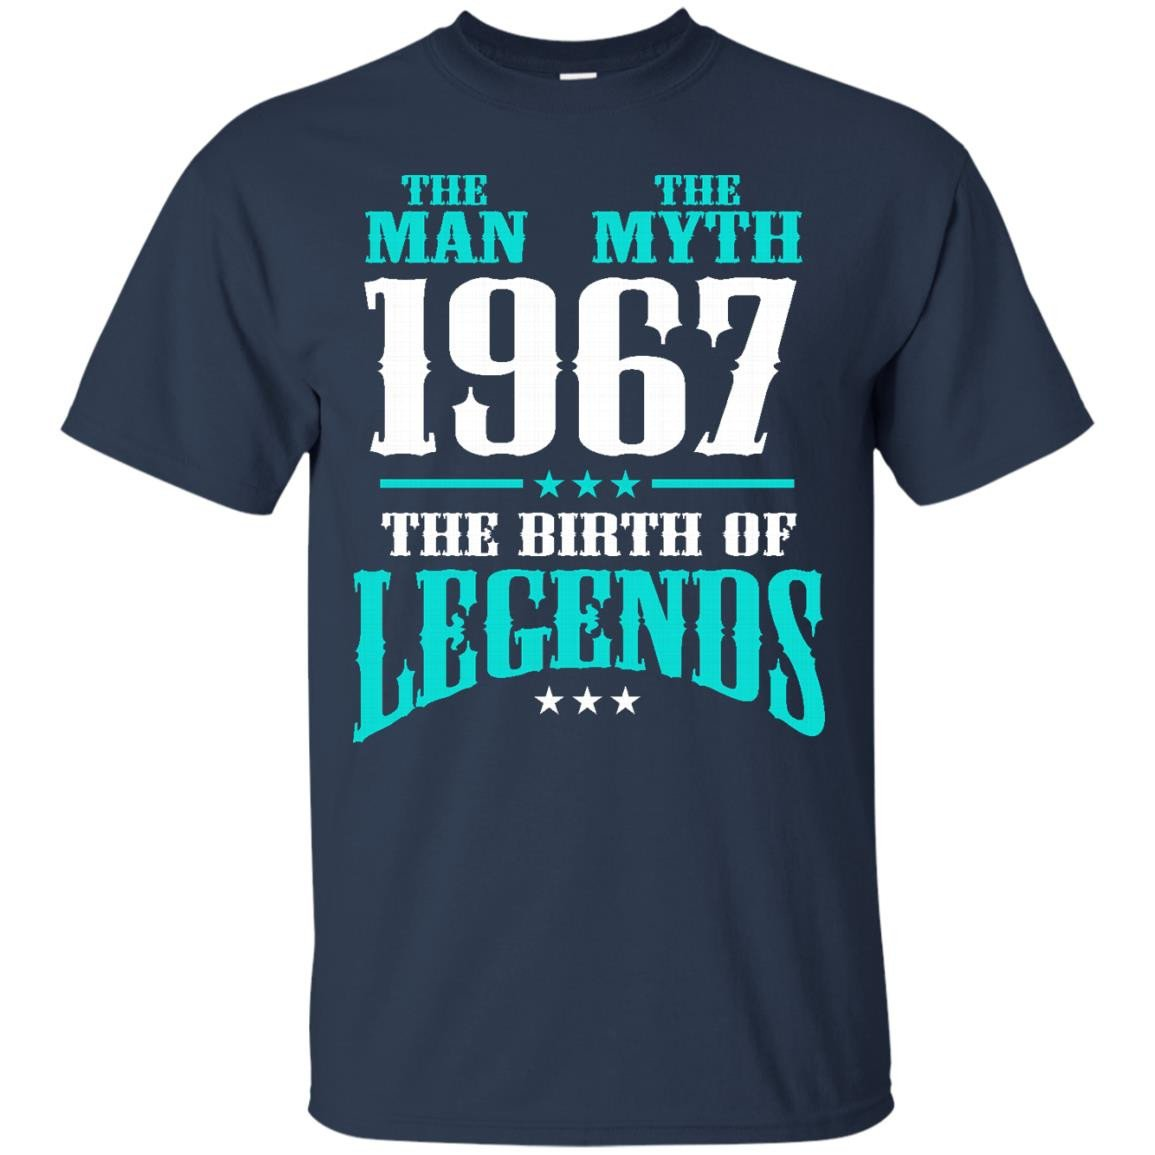 1967 Shirts The Man The Myth The Birth Of LegendsT-shirts Hoodies Sweatshirts